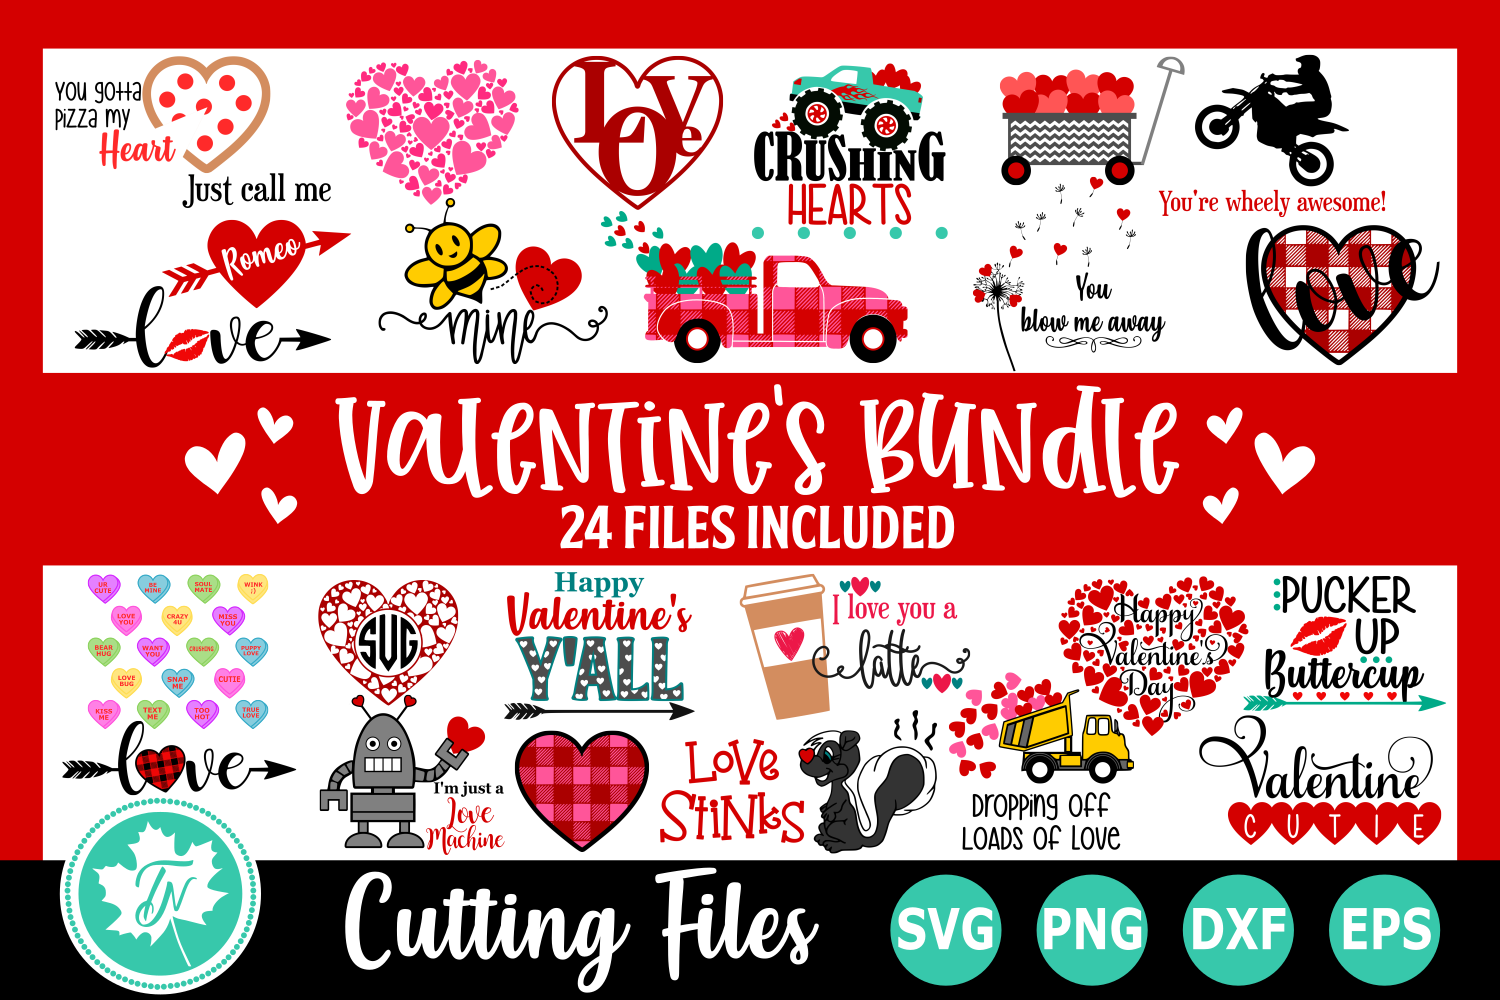 Download Free Valentine Bundle Graphic By Truenorthimagesca Creative Fabrica for Cricut Explore, Silhouette and other cutting machines.